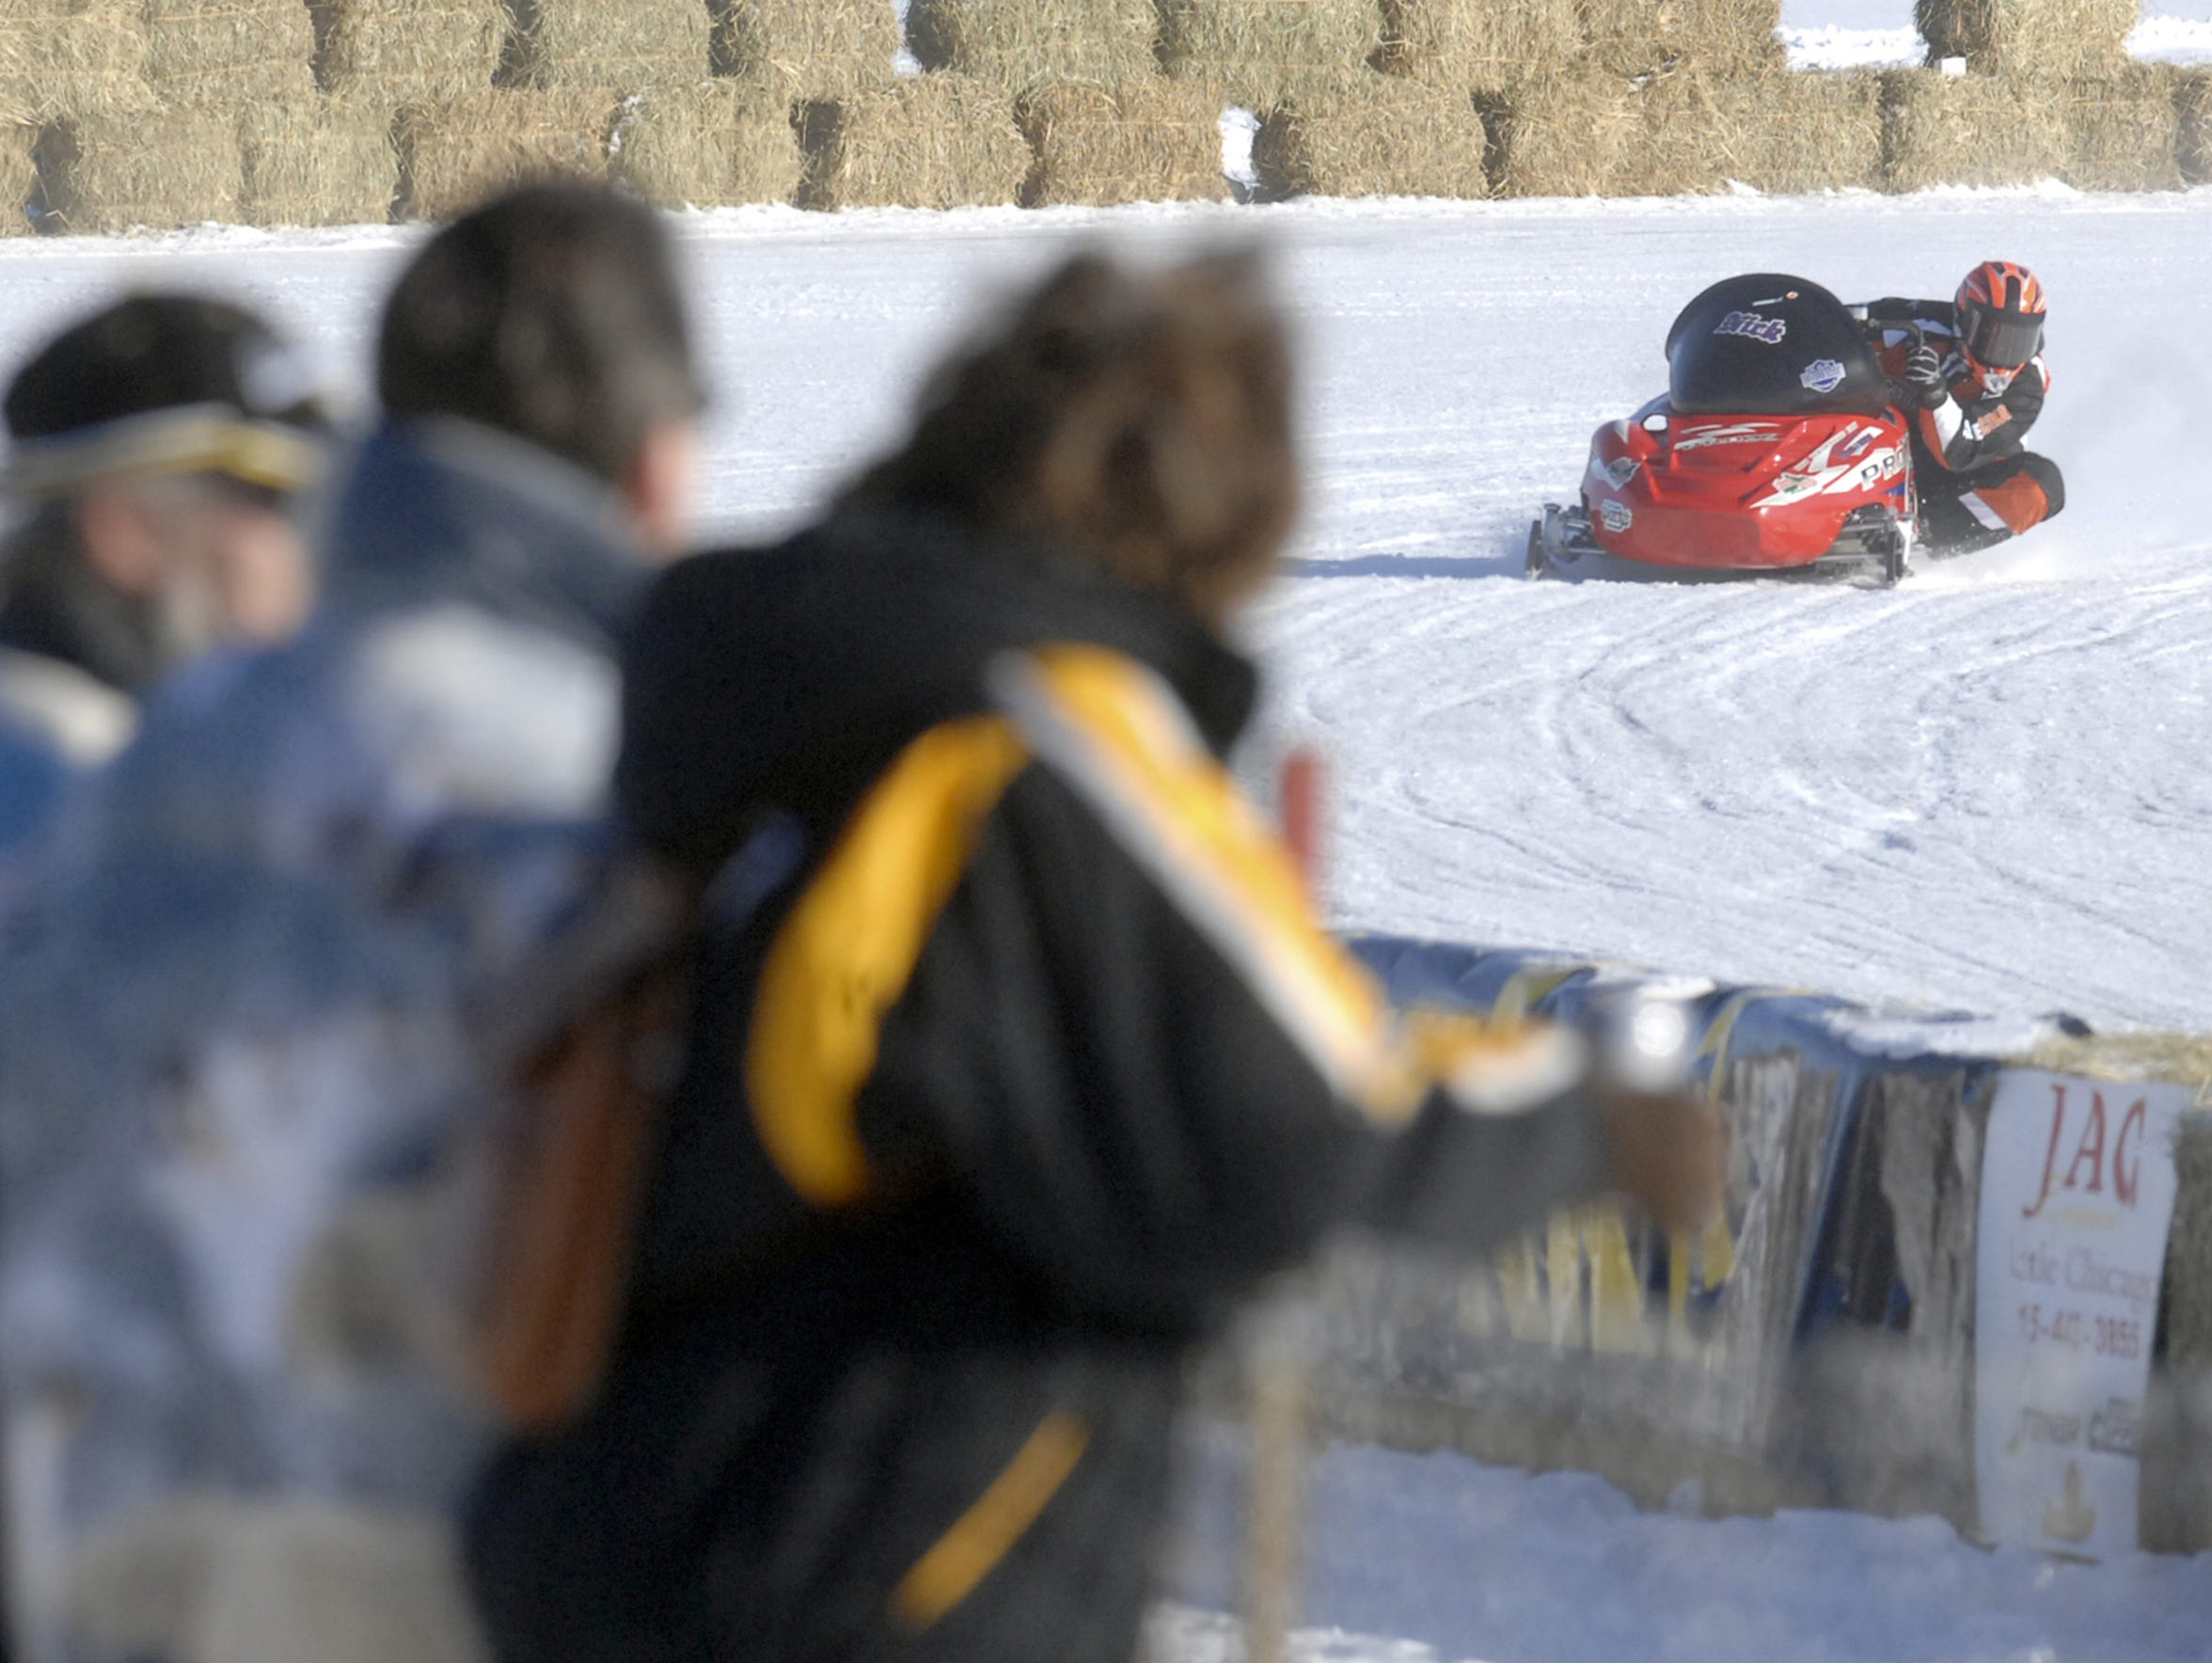 In this 2007 file photo, spectators watch as drivers